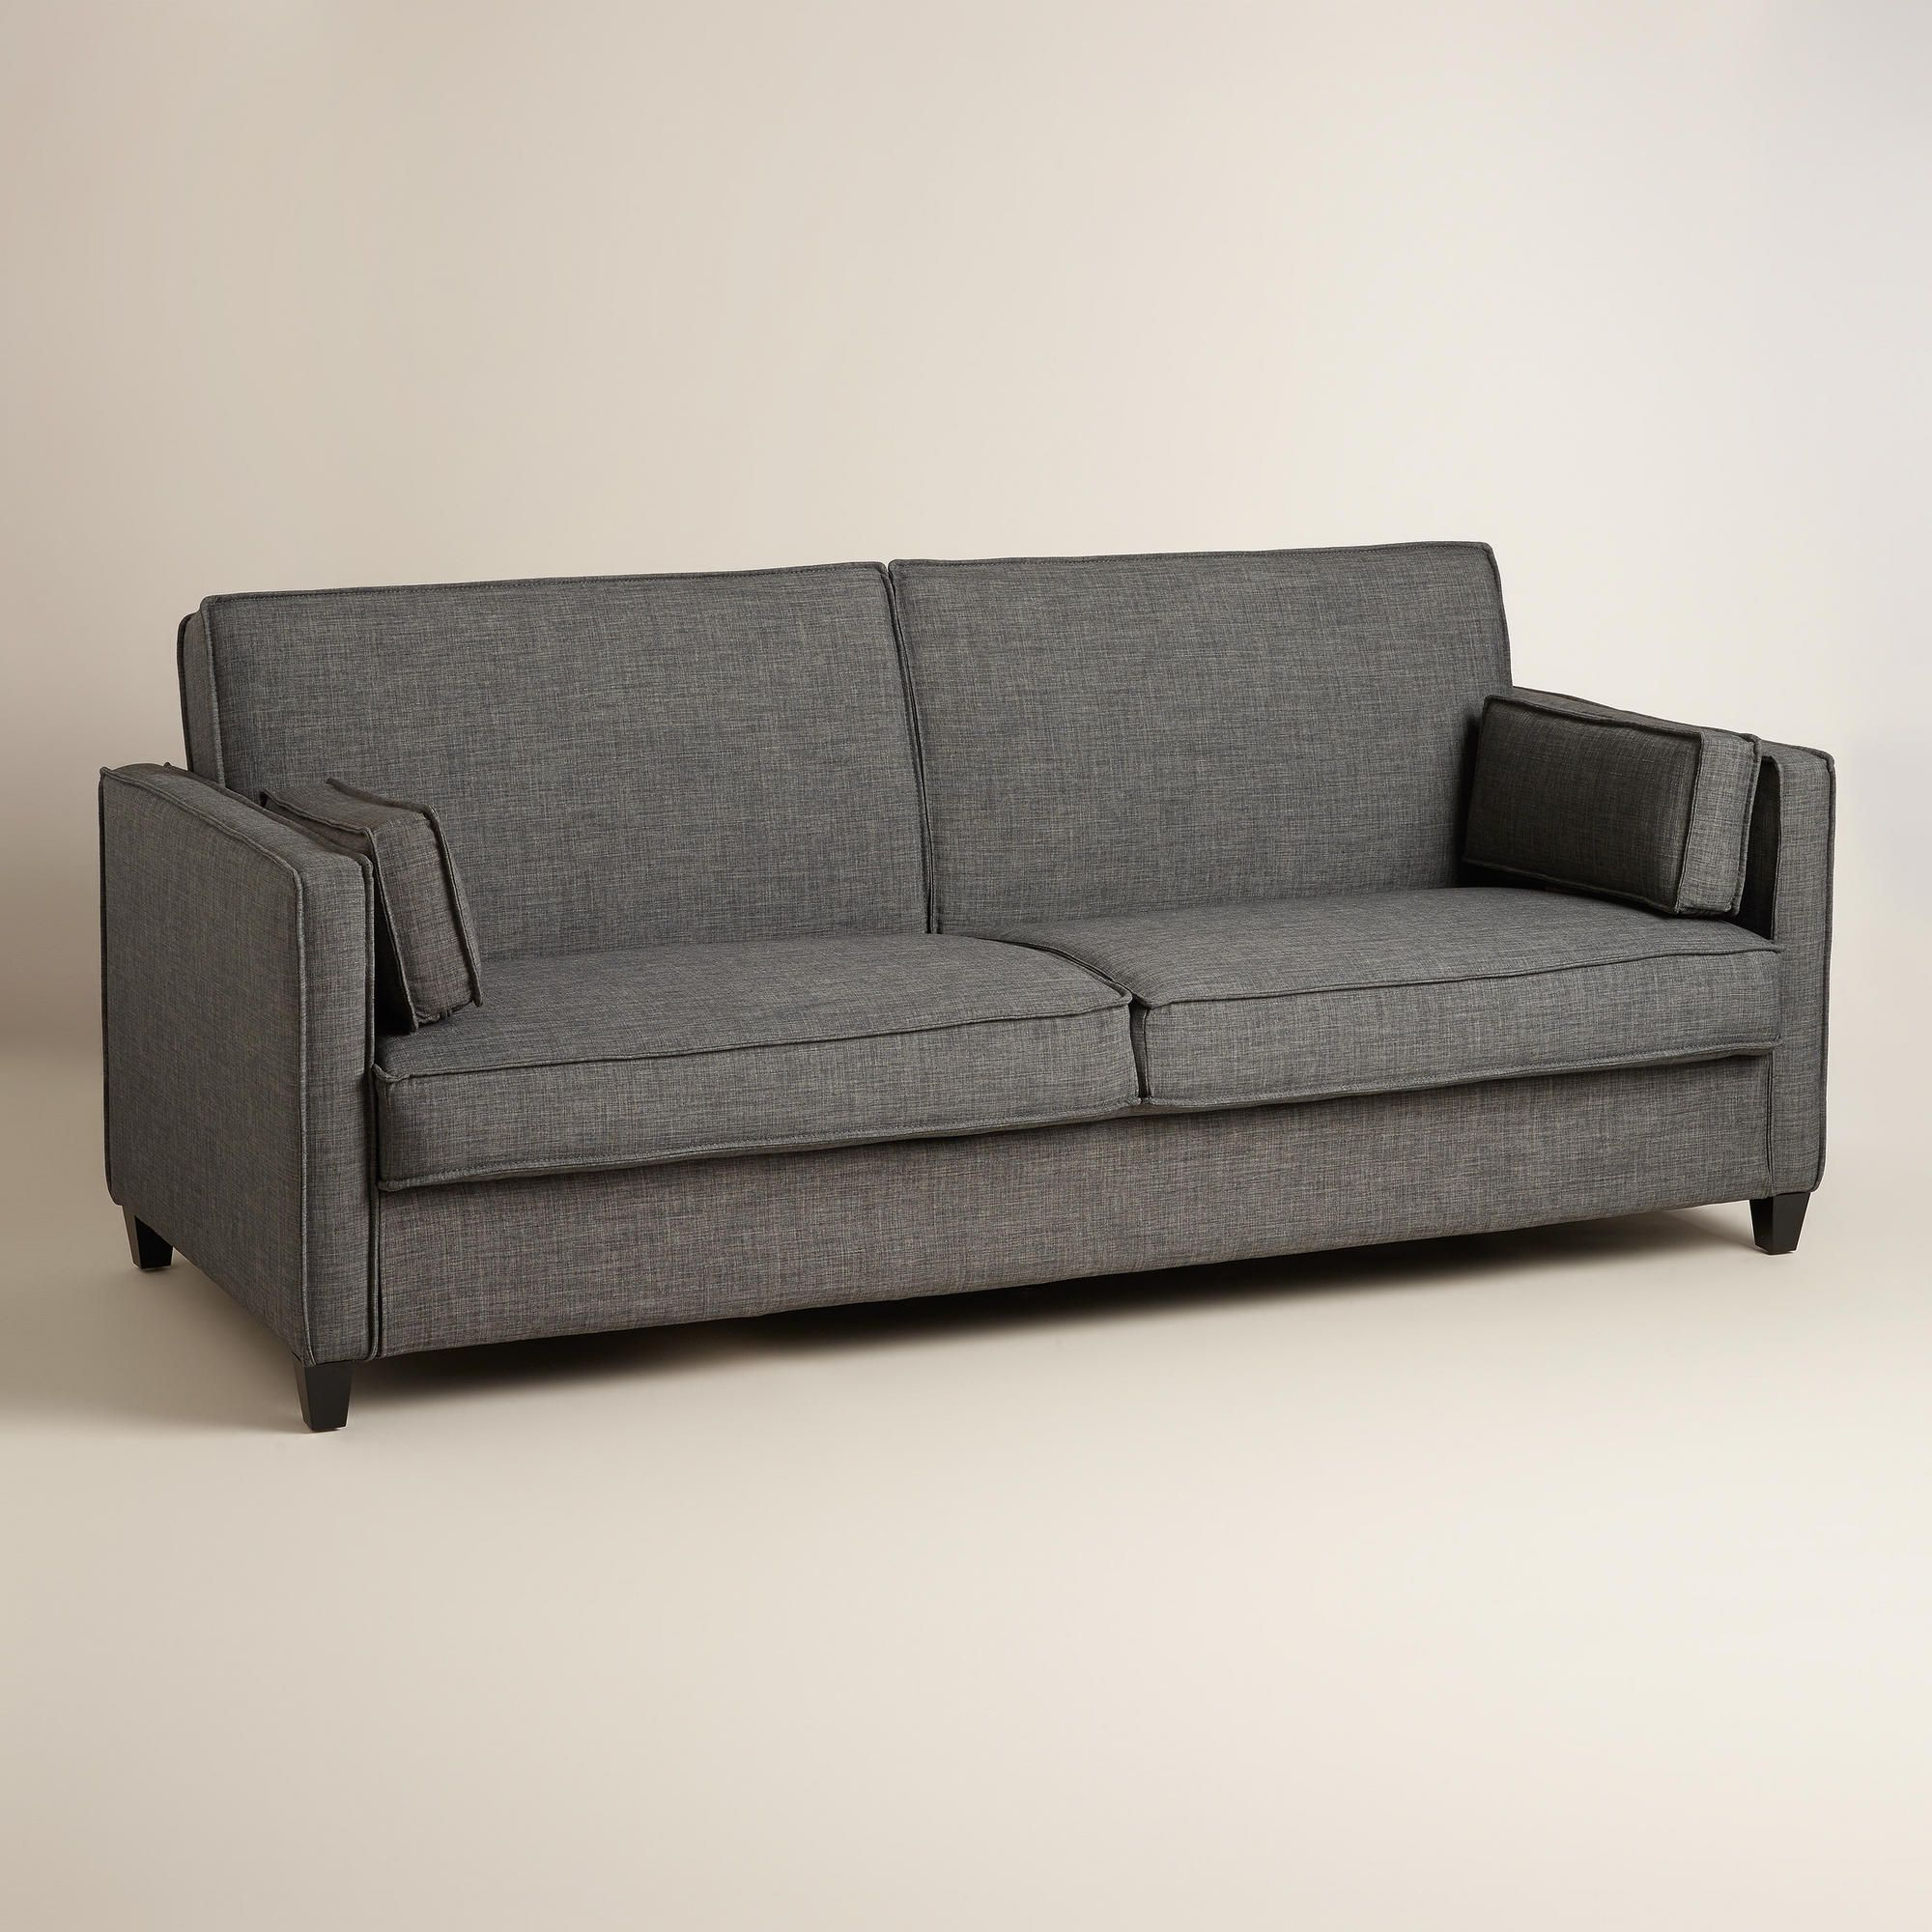 charcoal gray sofa bed sectional sofas los angeles nolee folding world market 81 1 quotw